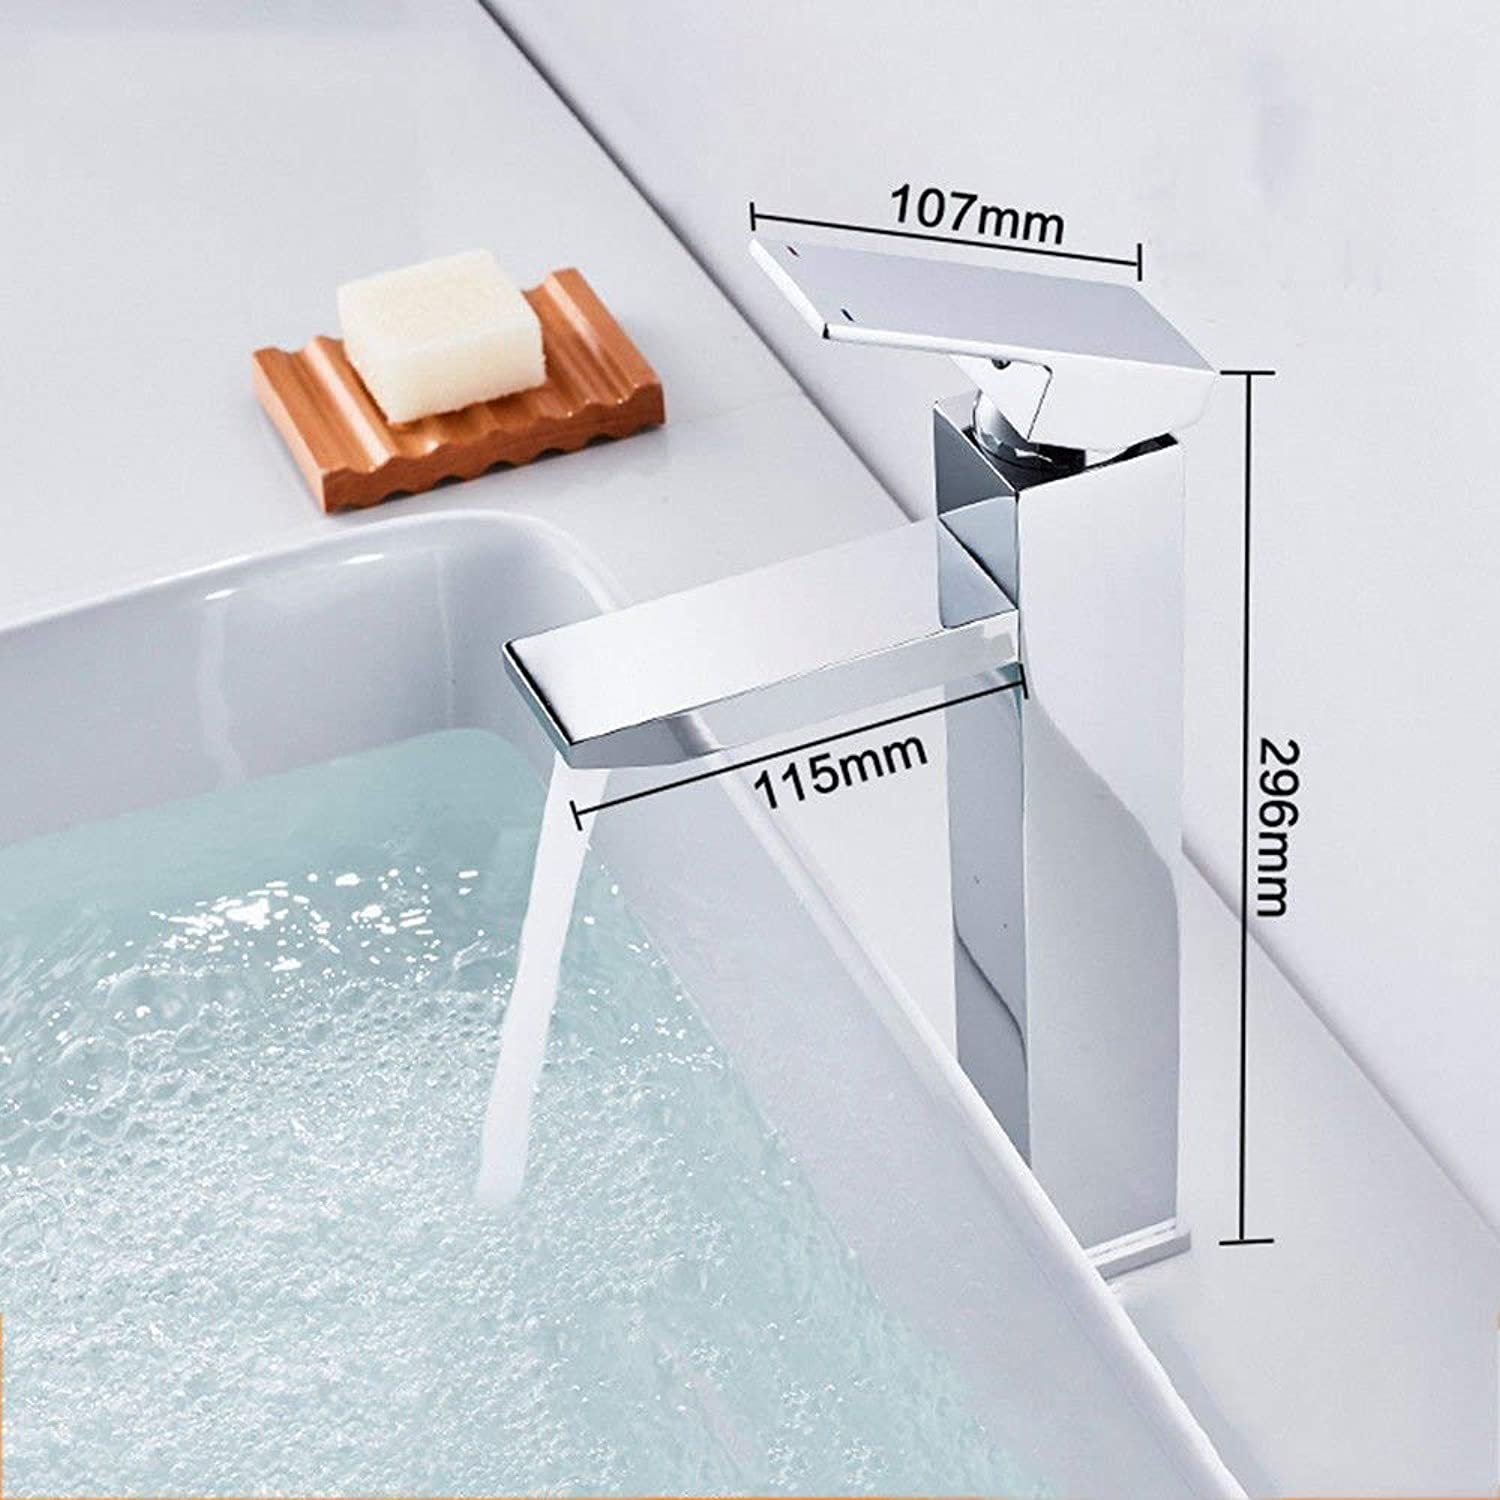 Oudan Basin Mixer Tap Copper hot and cold water faucet basin faucet bathroom single hole with high surface of the tub faucet square European faucet kitchen faucet chrome,A1 (color   A2)